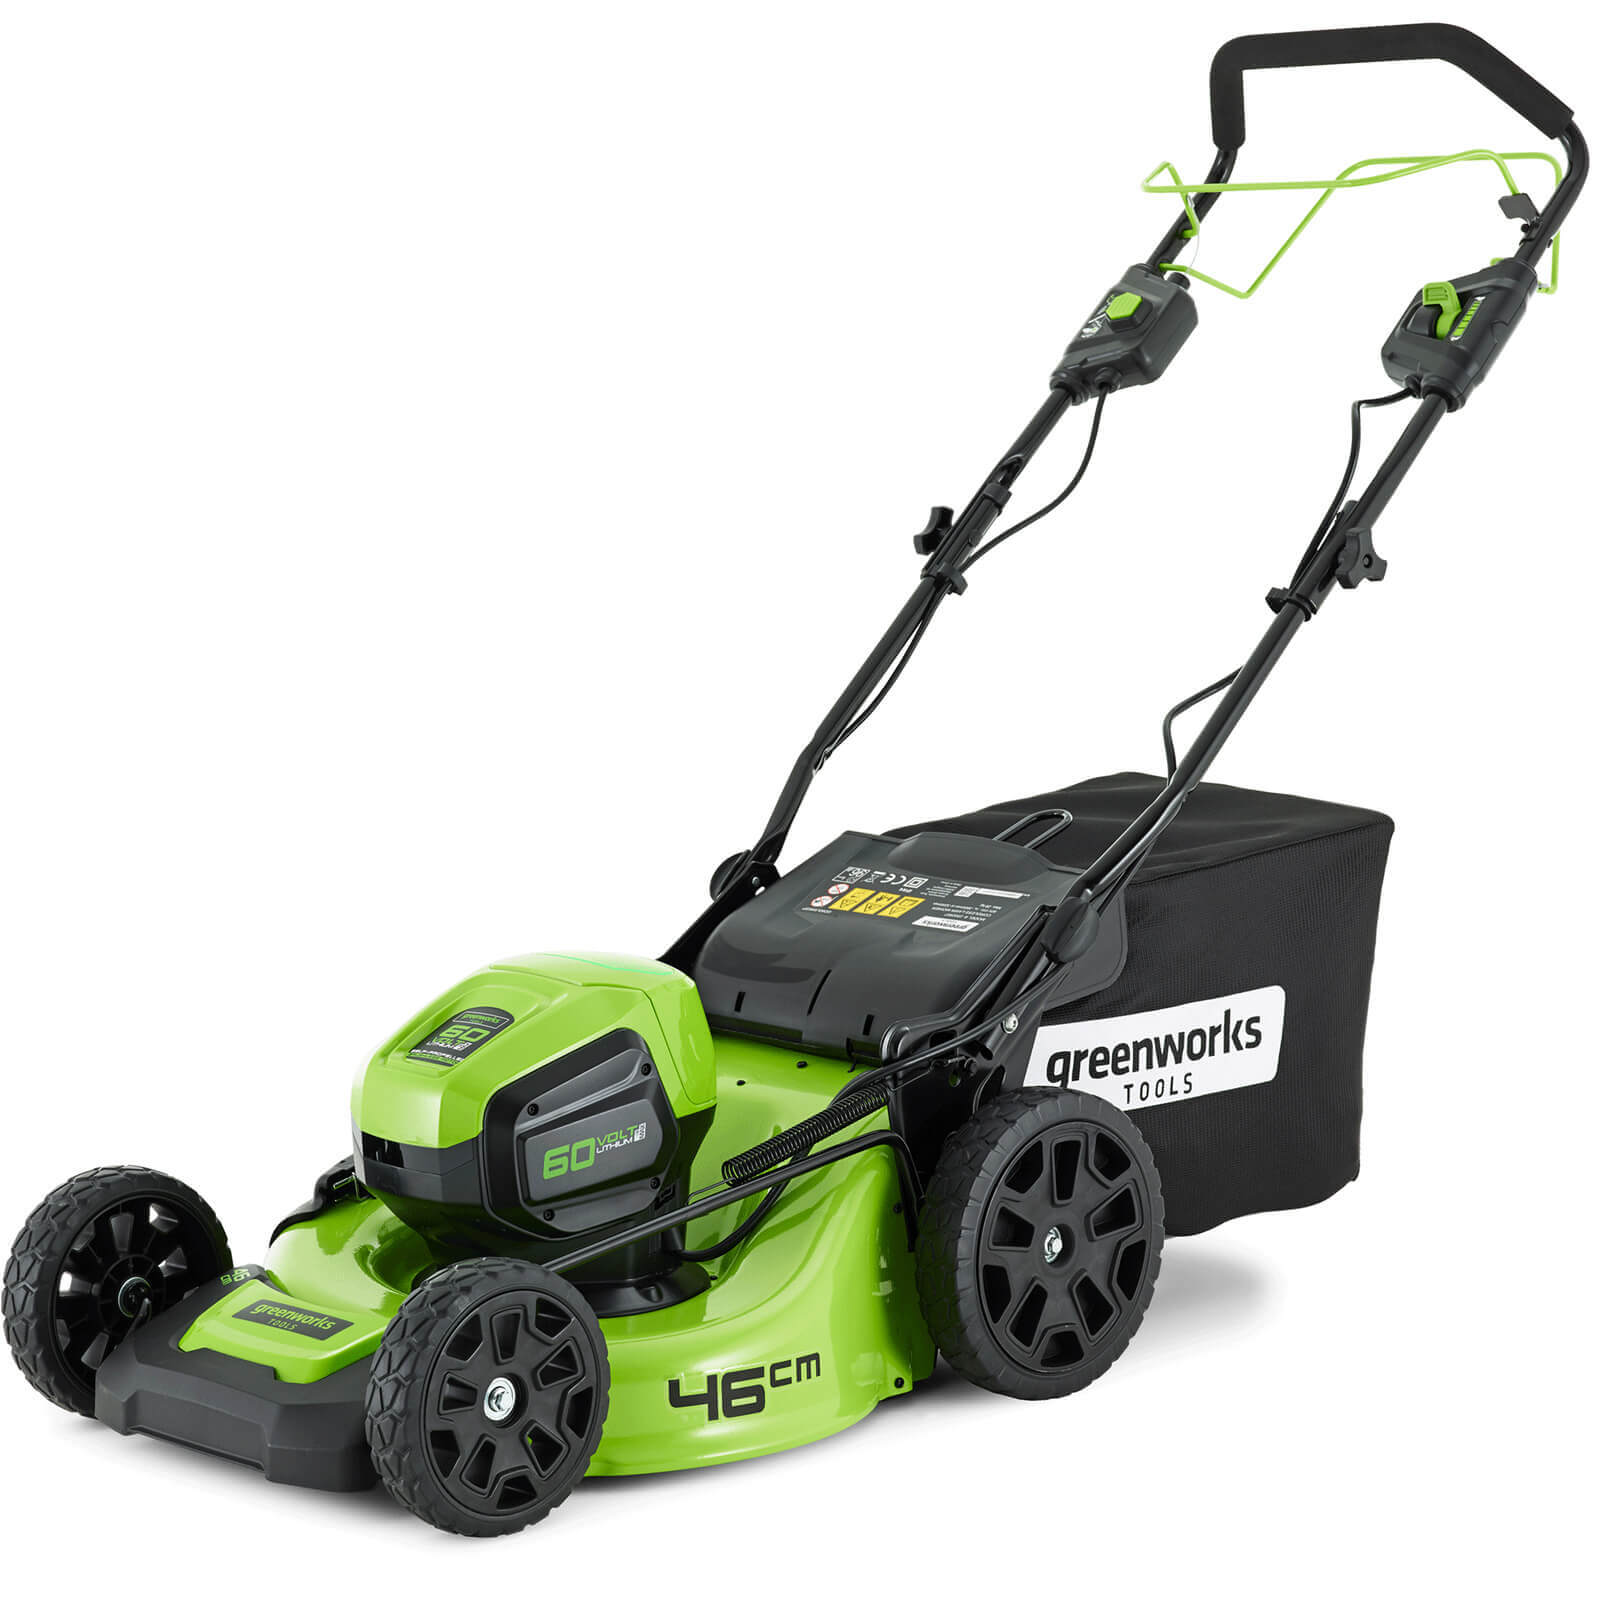 Image of Greenworks GD60LM46SP 60v Cordless Self Propelled Rotary Lawnmower 460mm 1 x 2ah Li-ion Charger